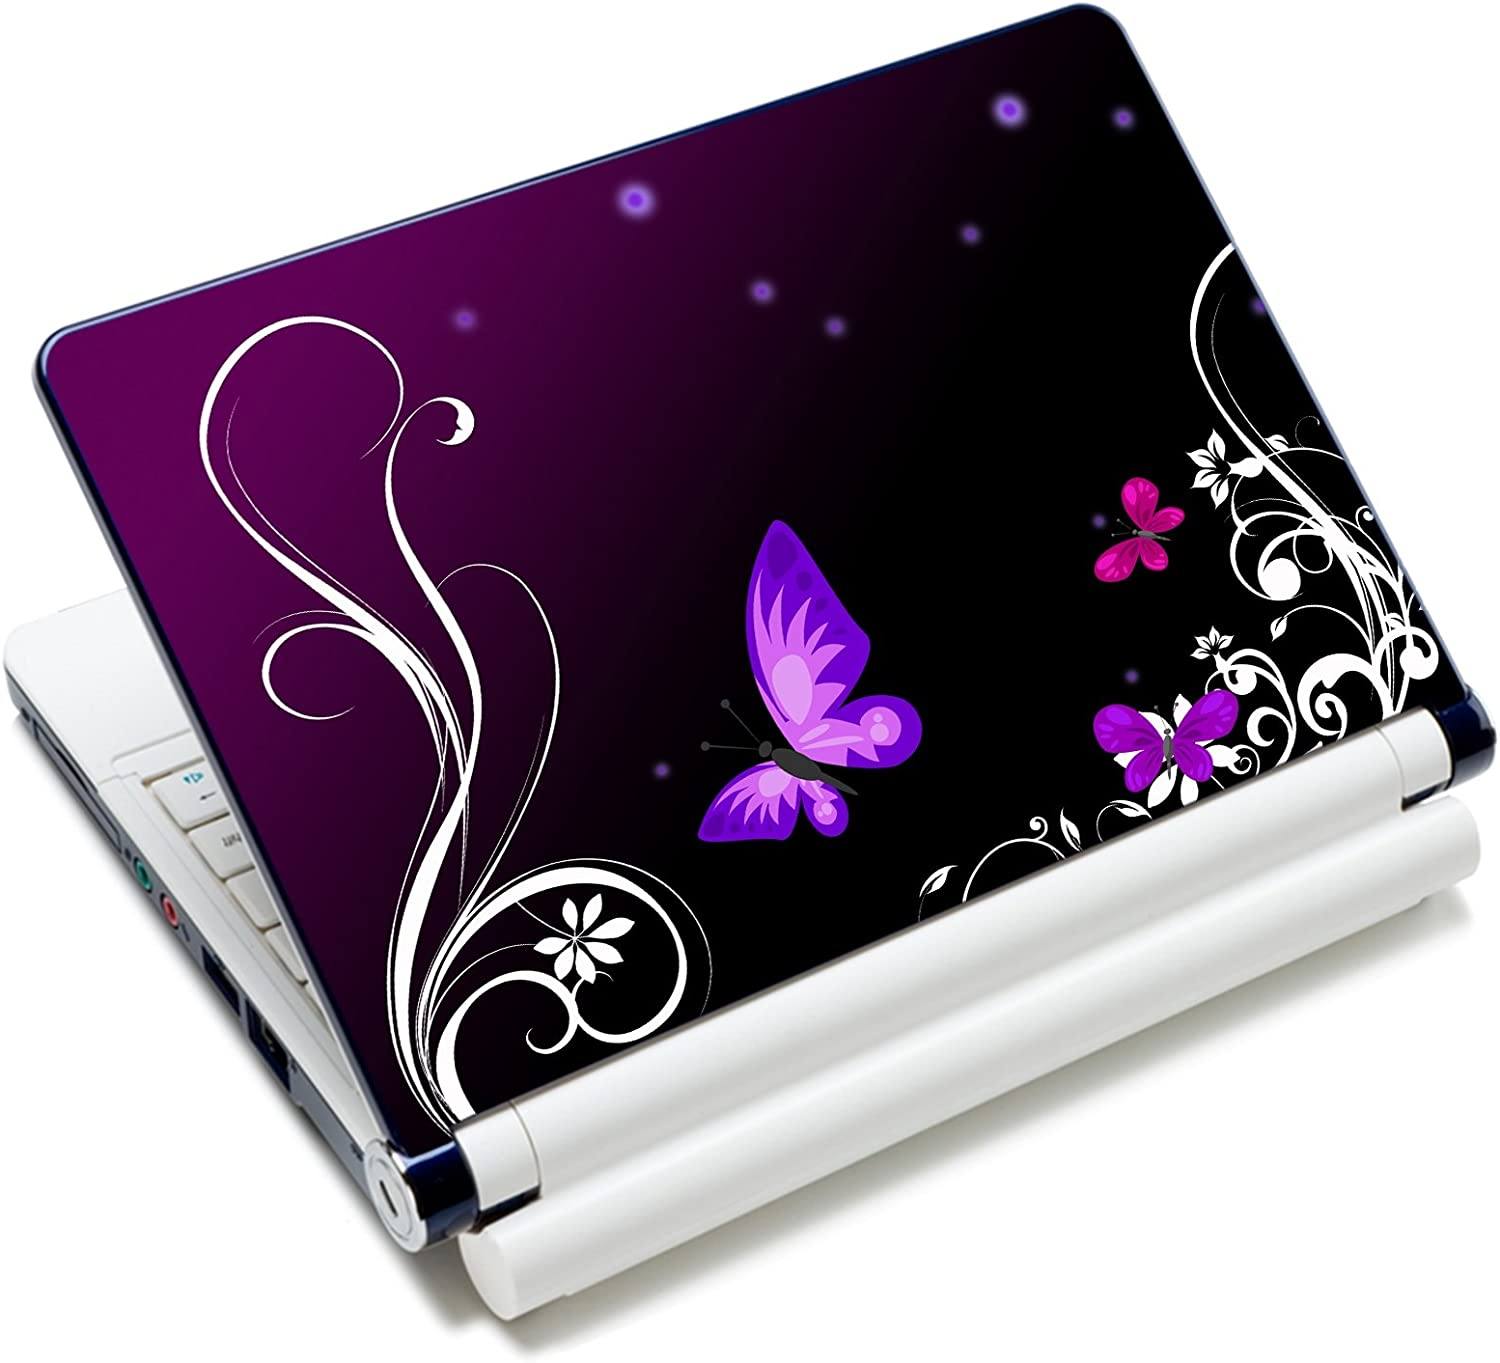 "iColor Laptop Skin Sticker Decal Covers 12"" 13"" 13.3"" 14"" 15"" 15.4"" 15.6 inch Laptop Skin Sticker Cover Art Decal Protector Notebook PC (Purple Butterfly)"